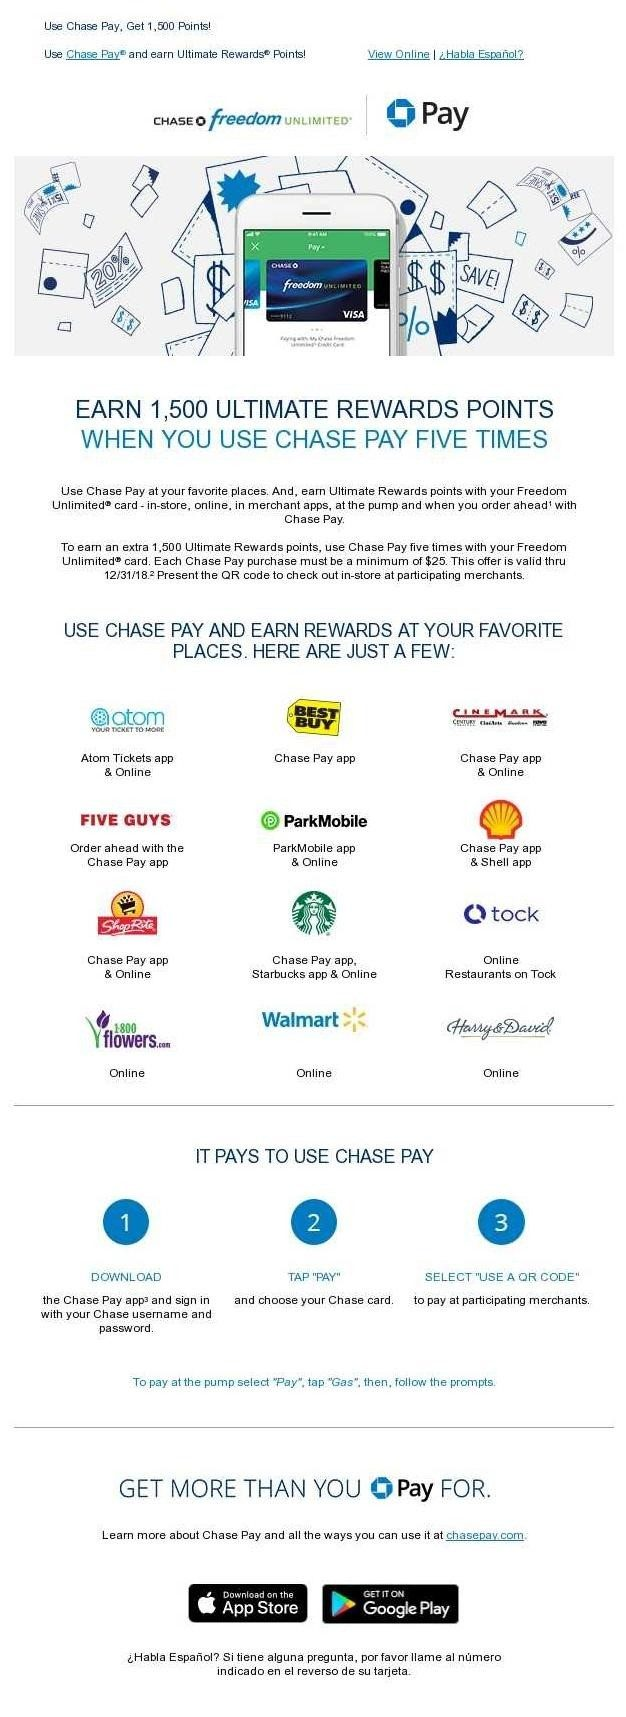 Chase is Marketing Chase Pay with Multiple Offers, Including